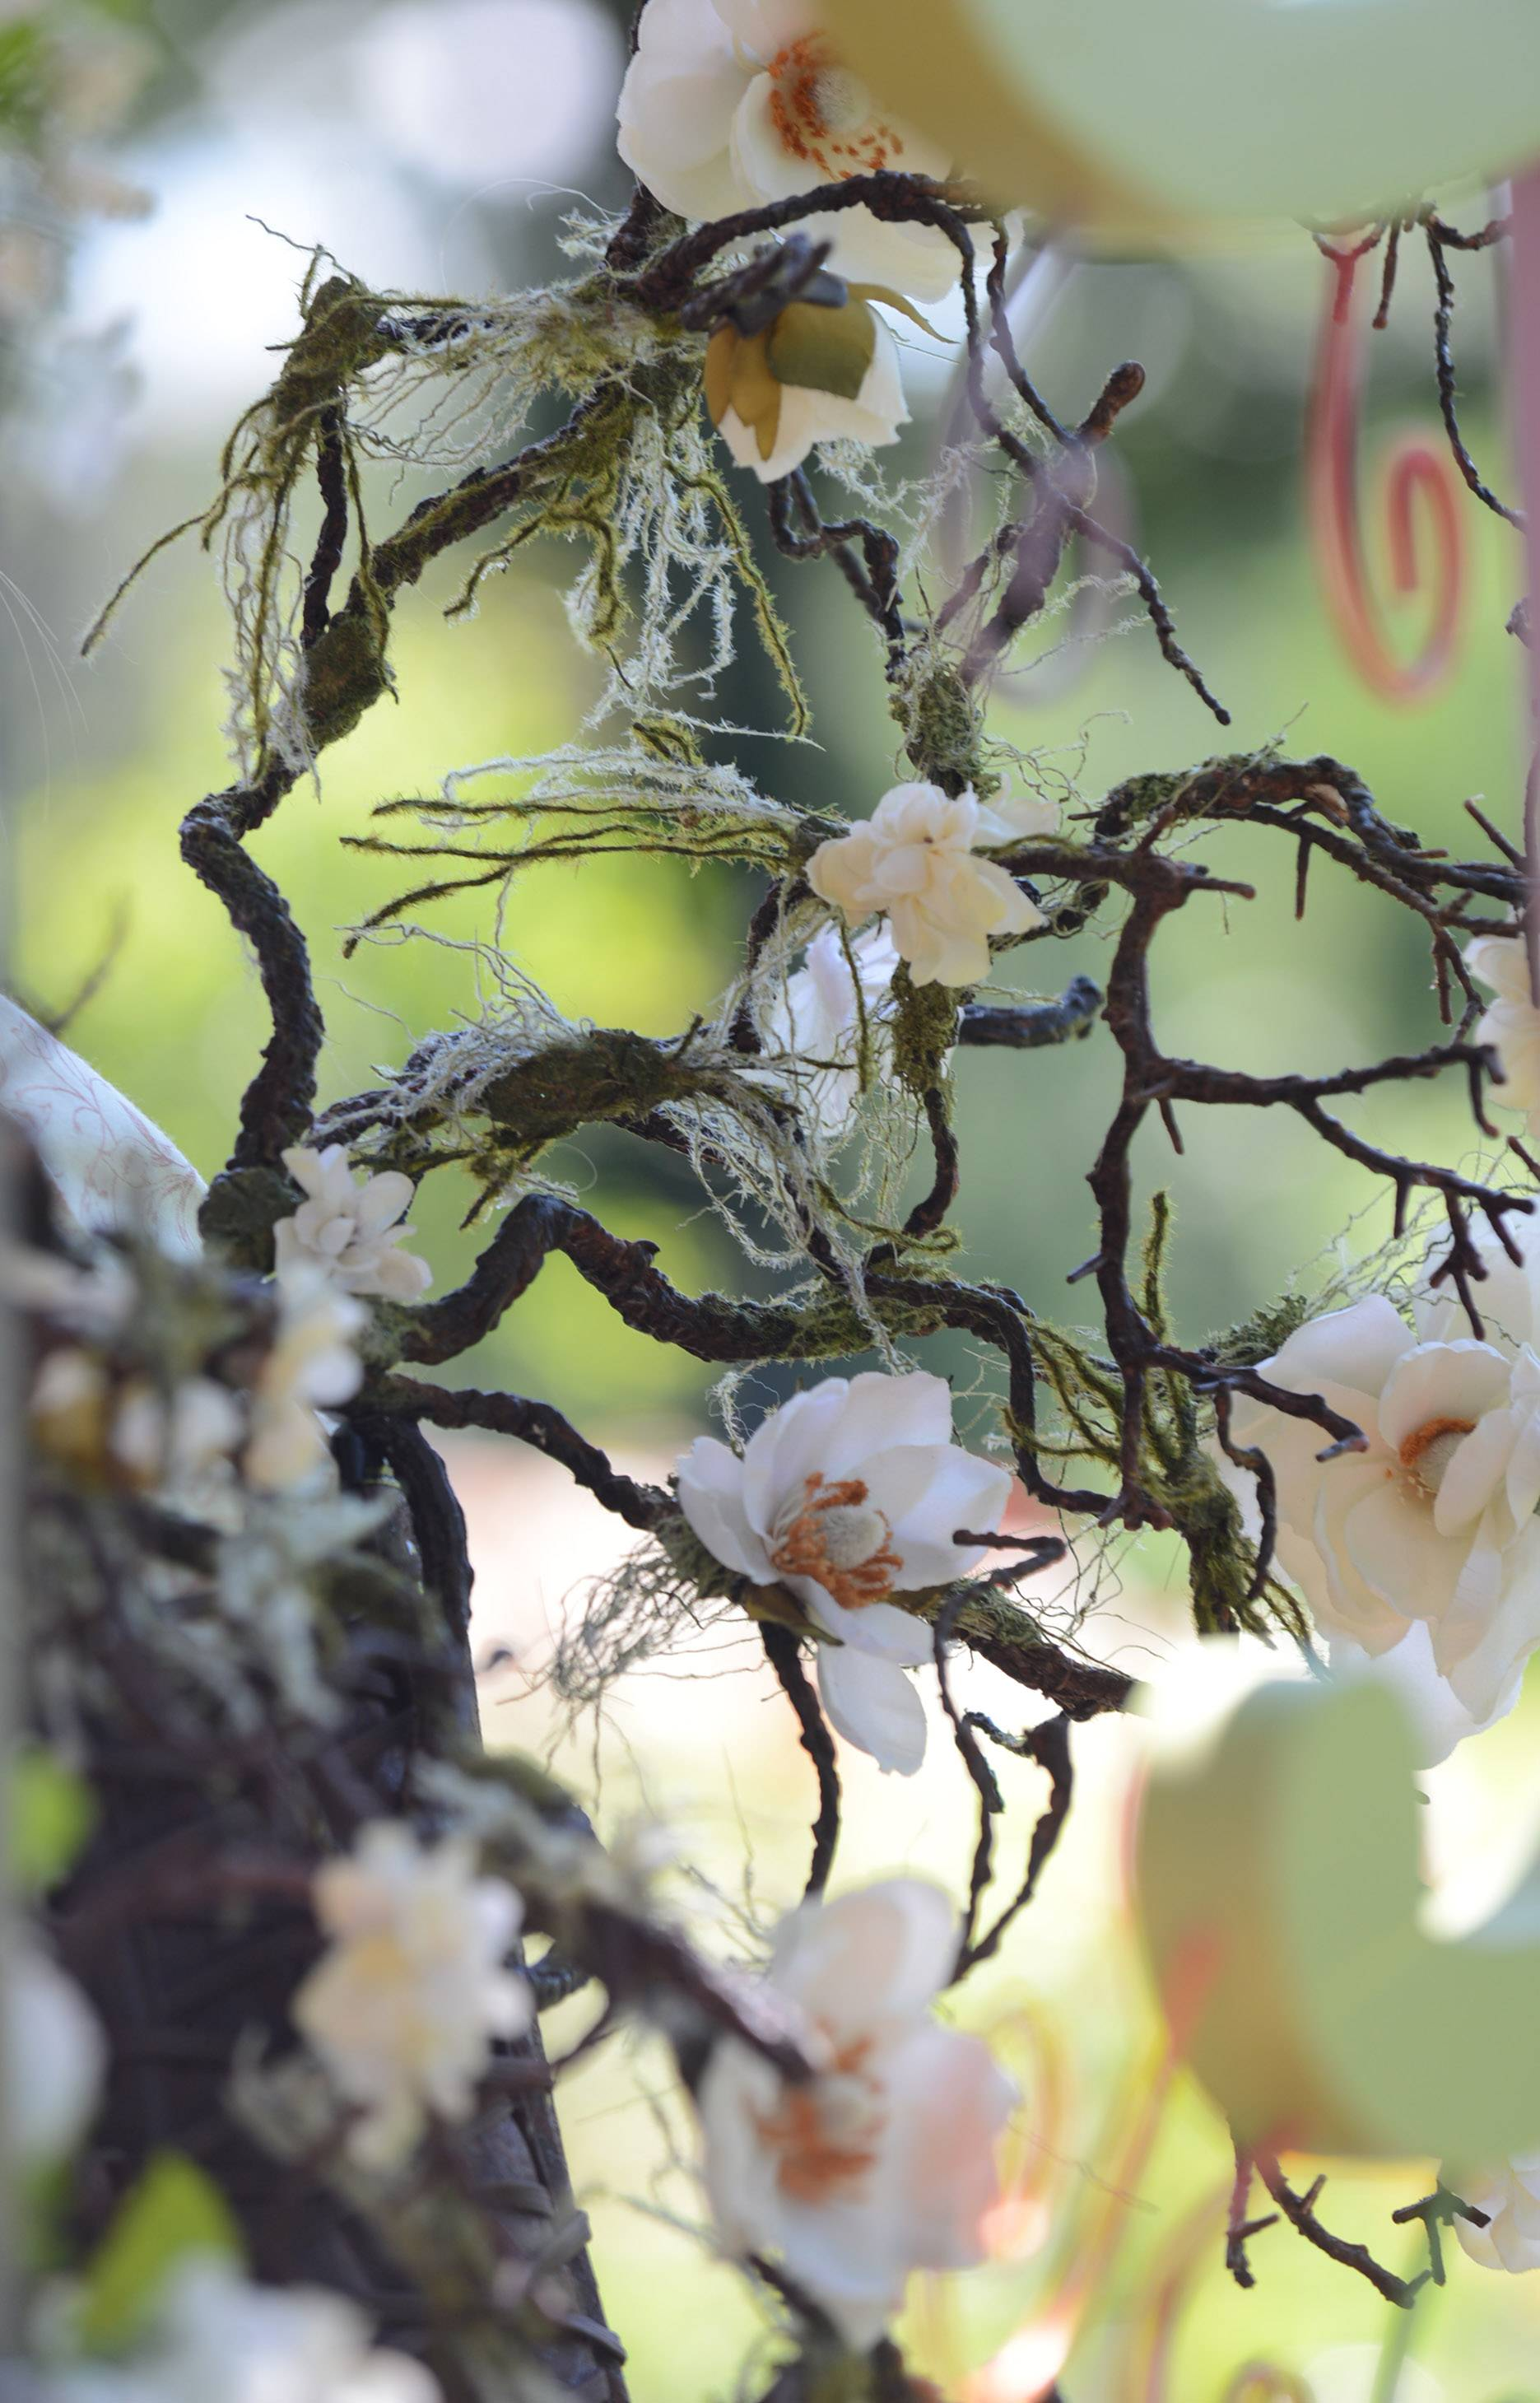 At last year's World of Faeries Festival, fairy wings were made of branches and covered in flowers and spider webs.